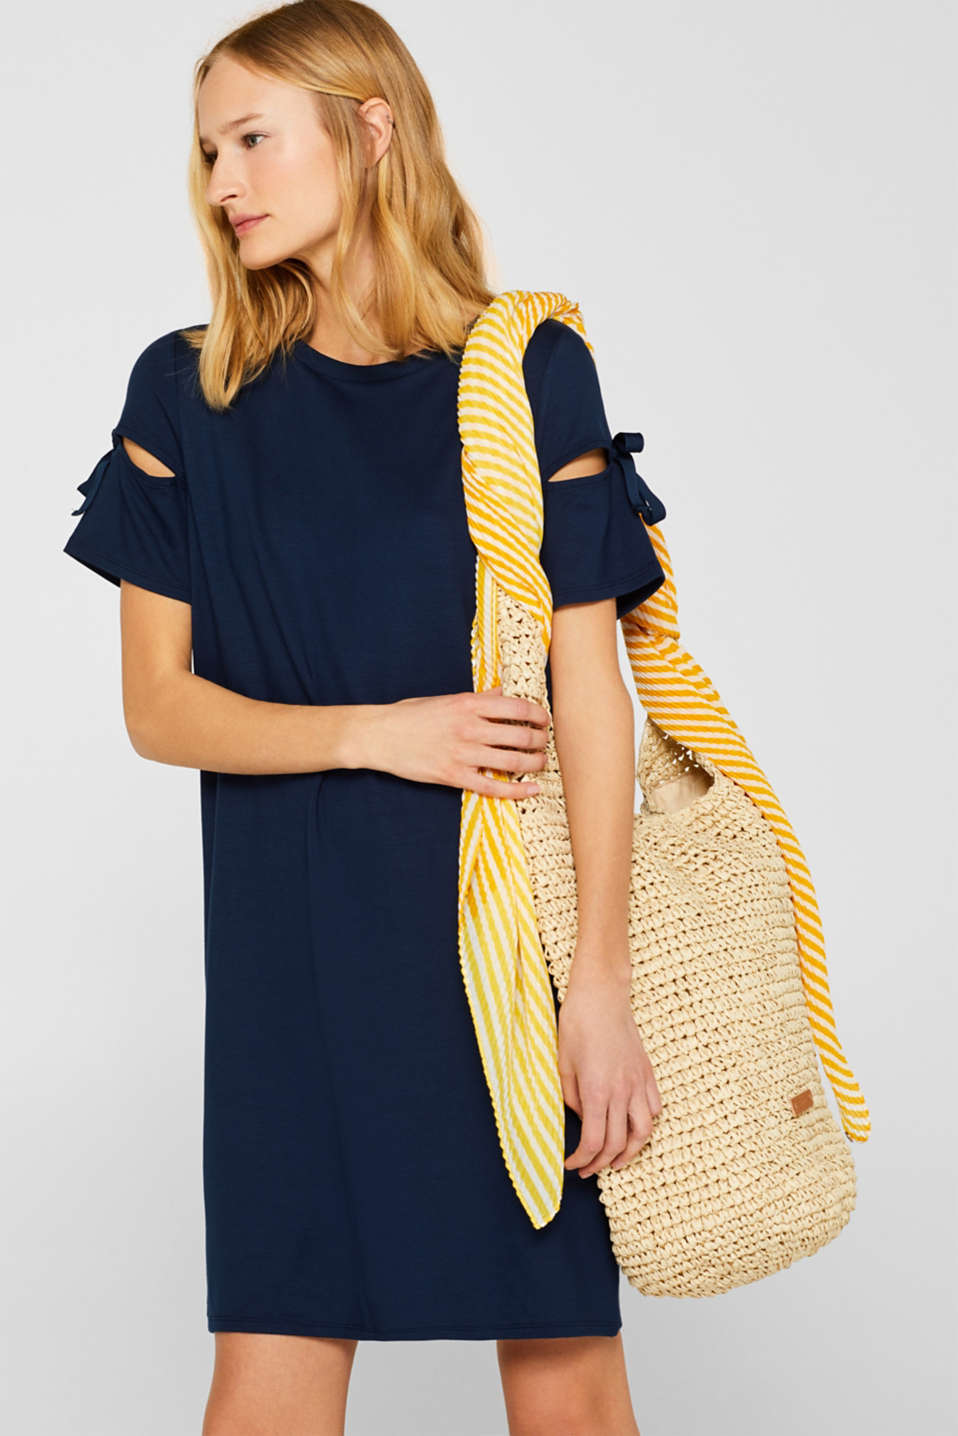 Jersey dress with knotted details, NAVY 2, detail image number 1